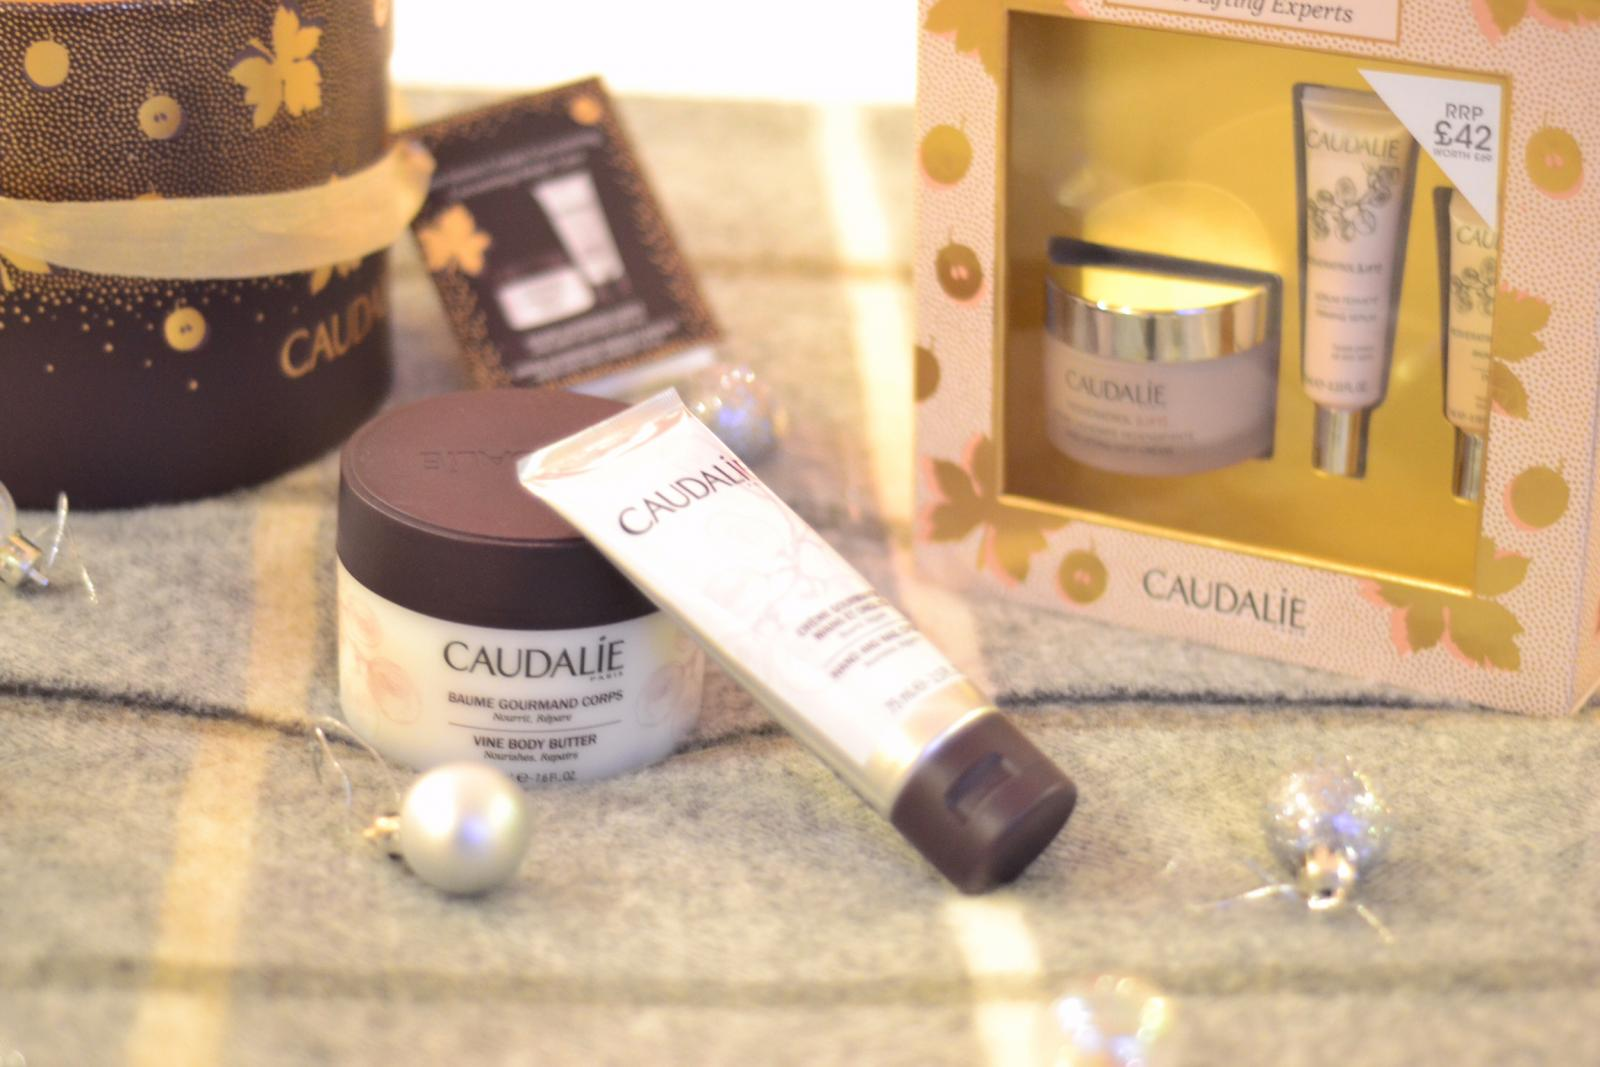 caudalie-vine-body-butter-gift-set